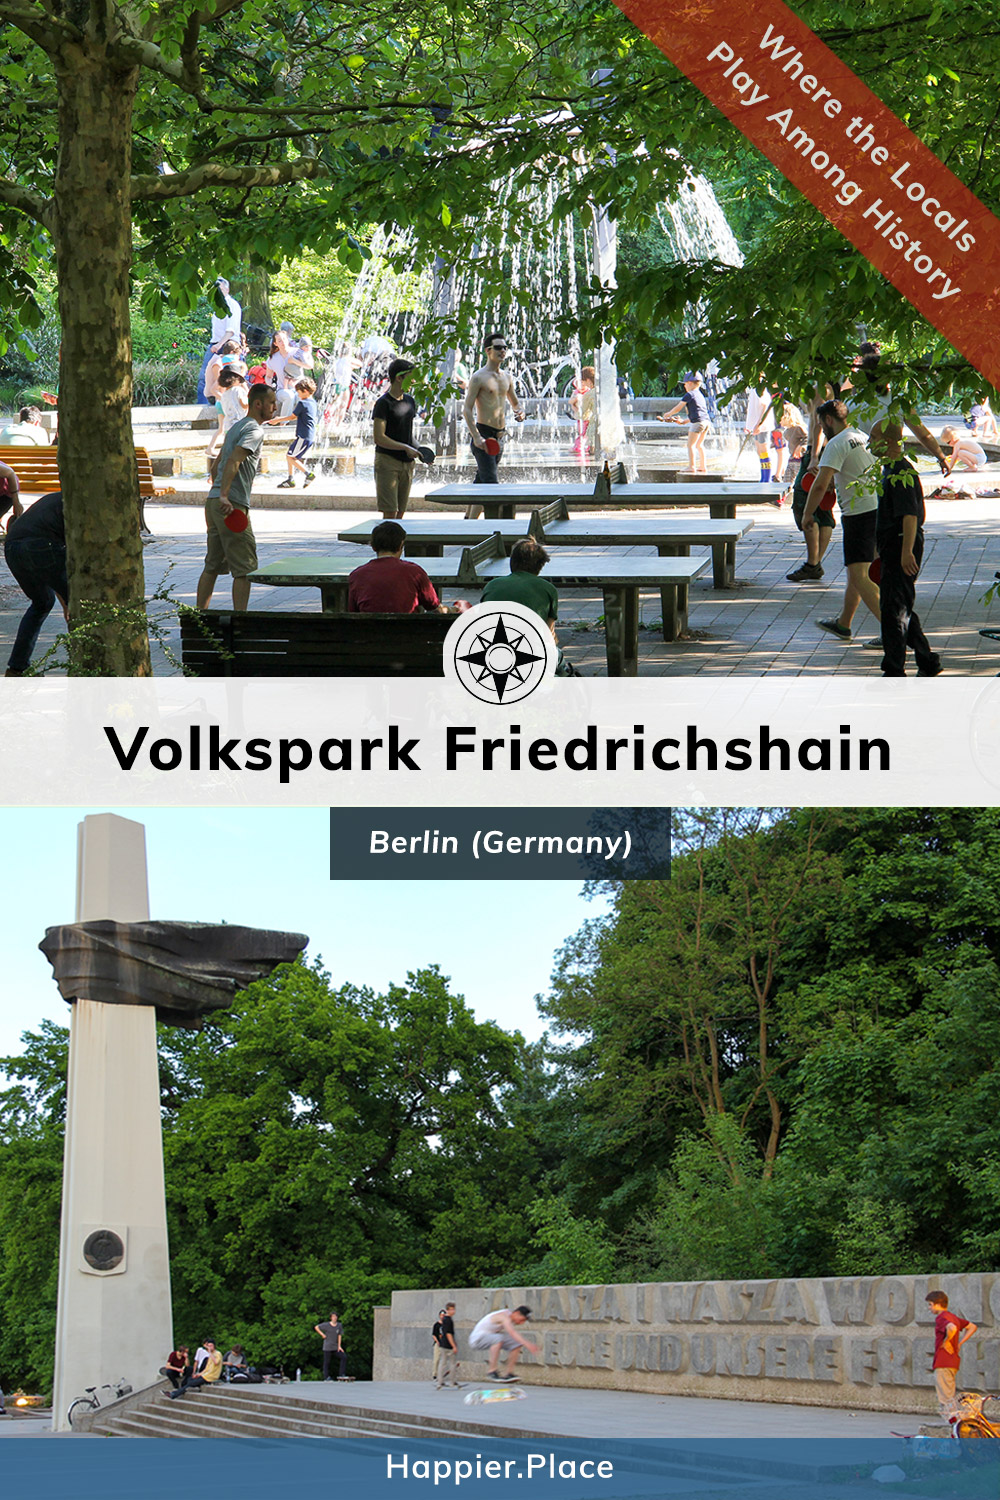 Volkspark Friedrichshain, Berlin, Germany - where locals play among history - ping pong, table tennis, skateboard, polish anti-fascist german memorial